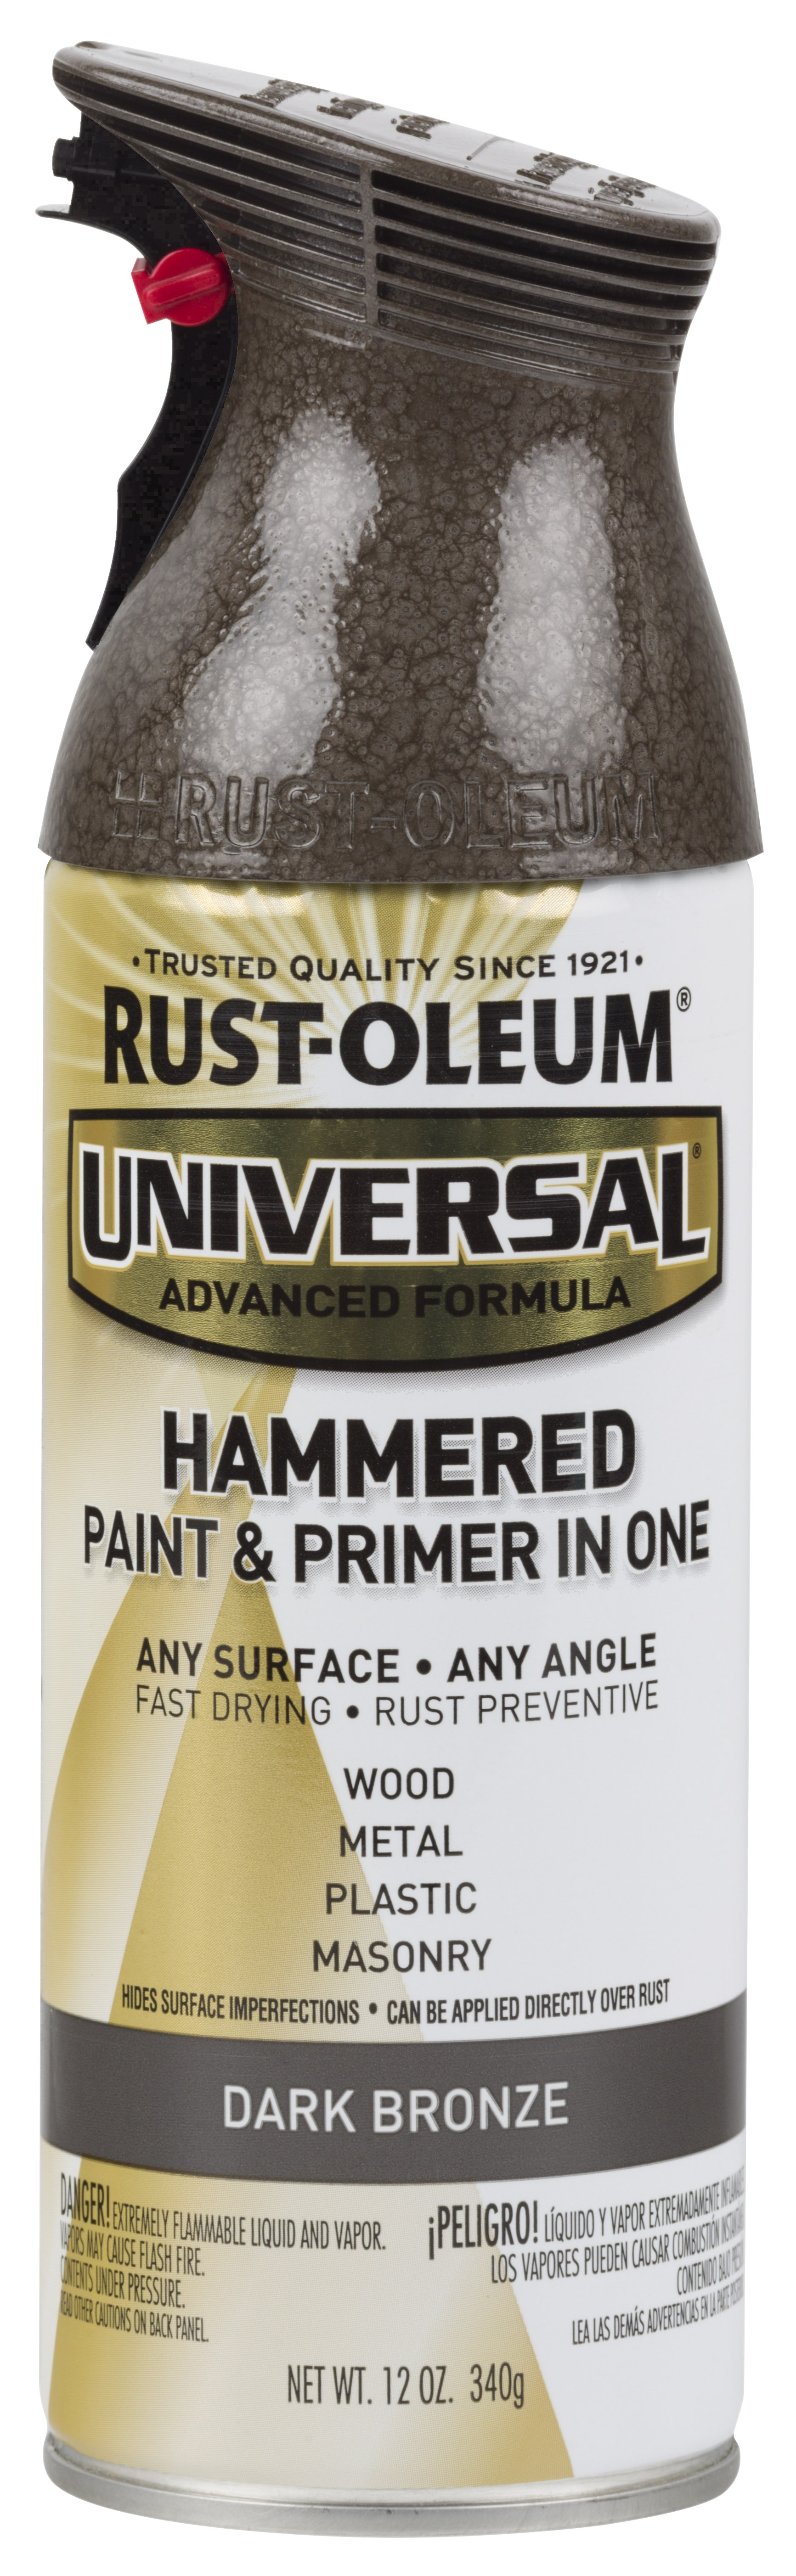 (3 Pack) Rust-Oleum Universal All Surface Hammered Dark Bronze Spray Paint and Primer in 1, 12 oz